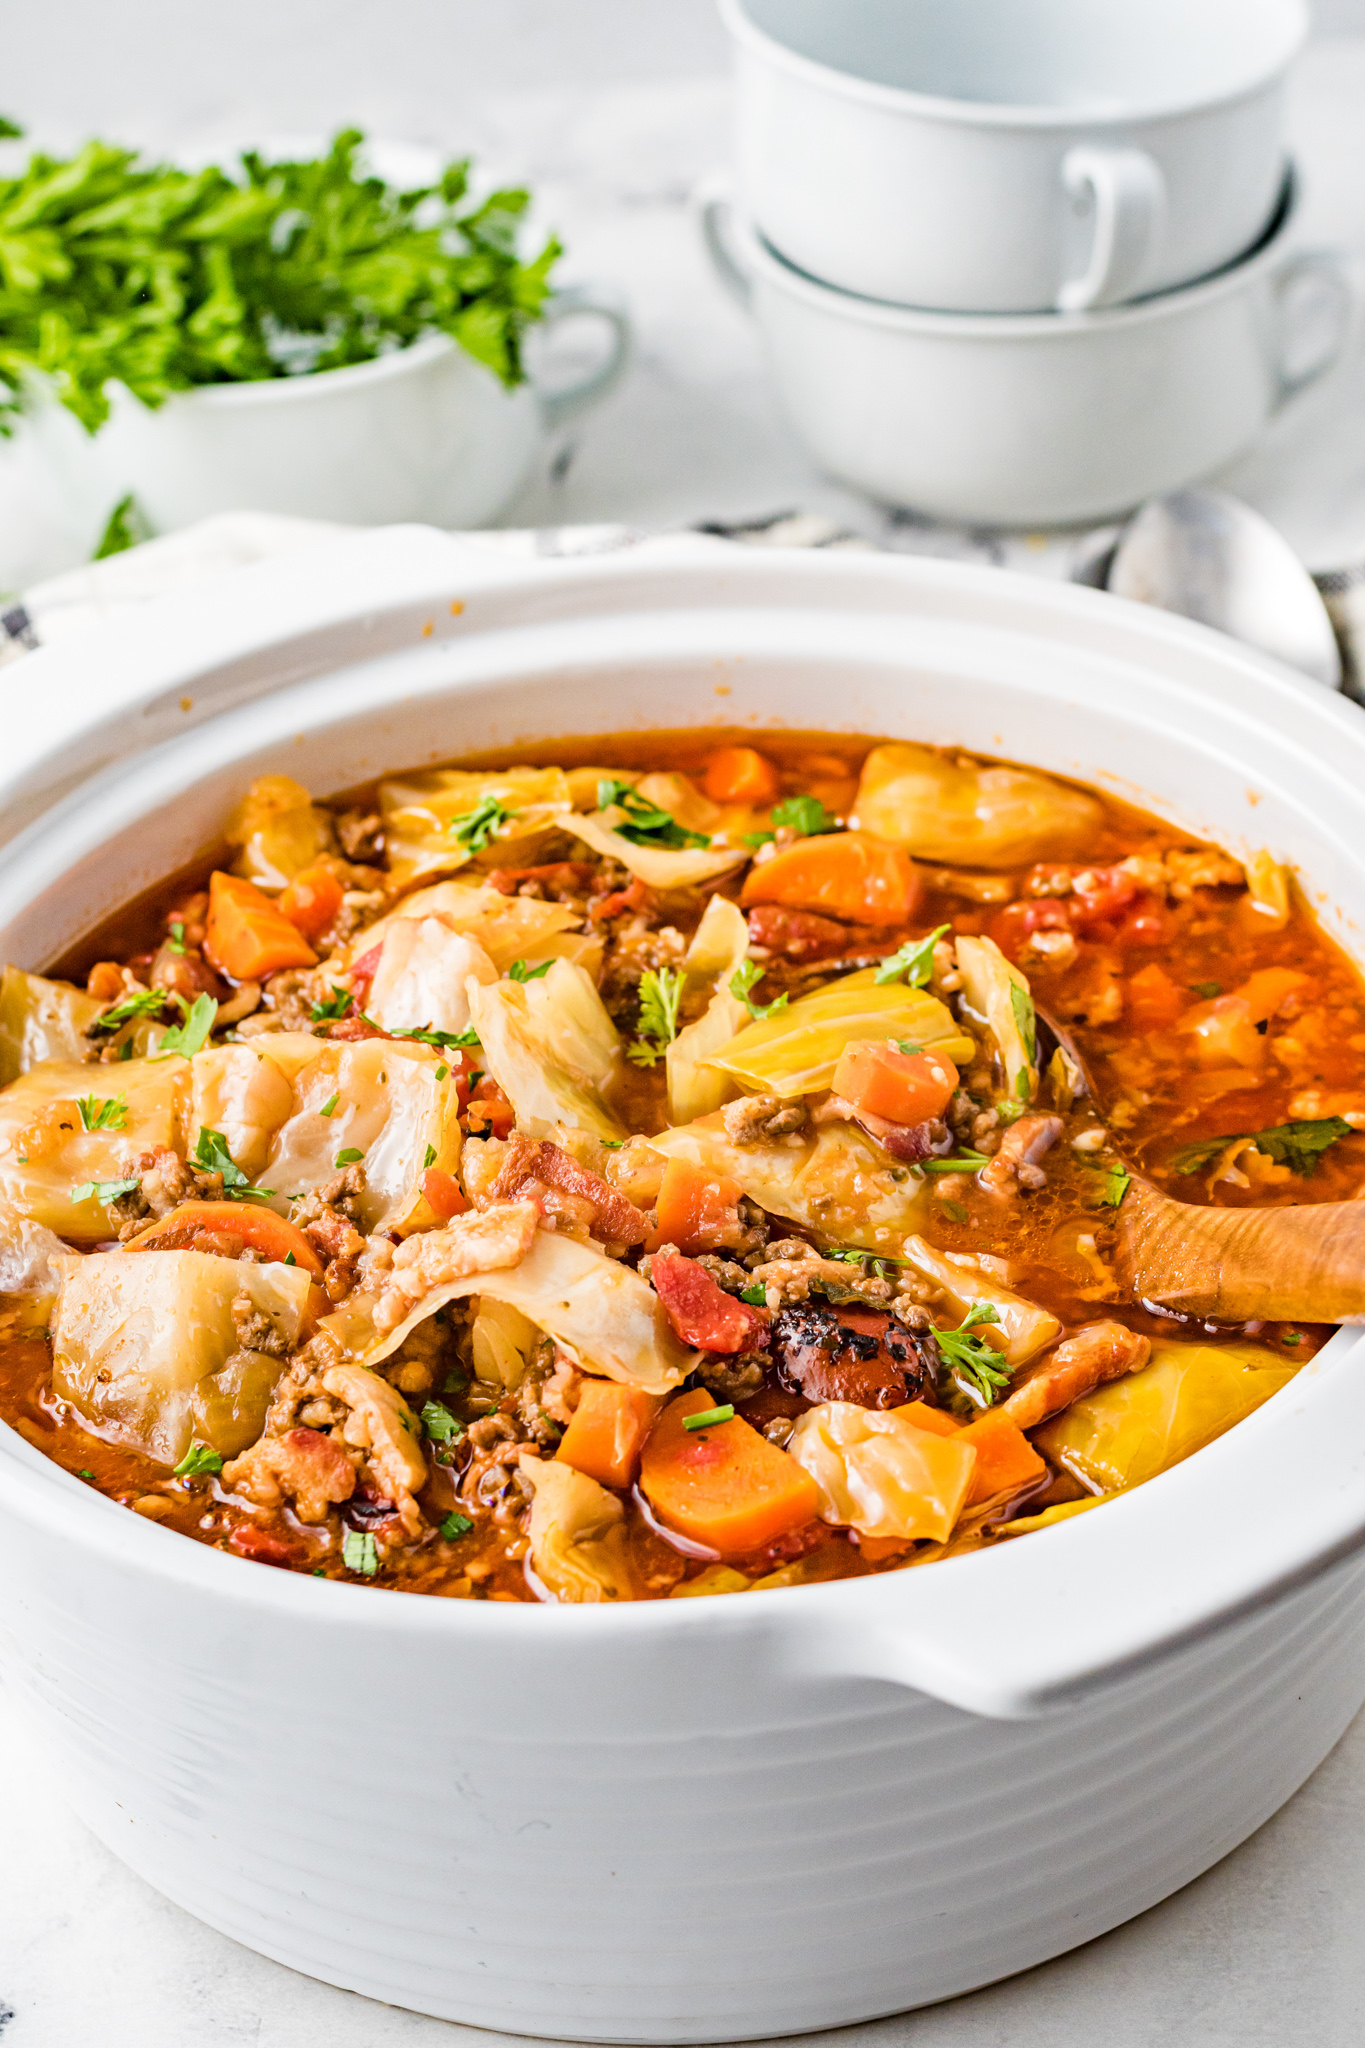 Cabbage Roll Soup with wooden spoon.